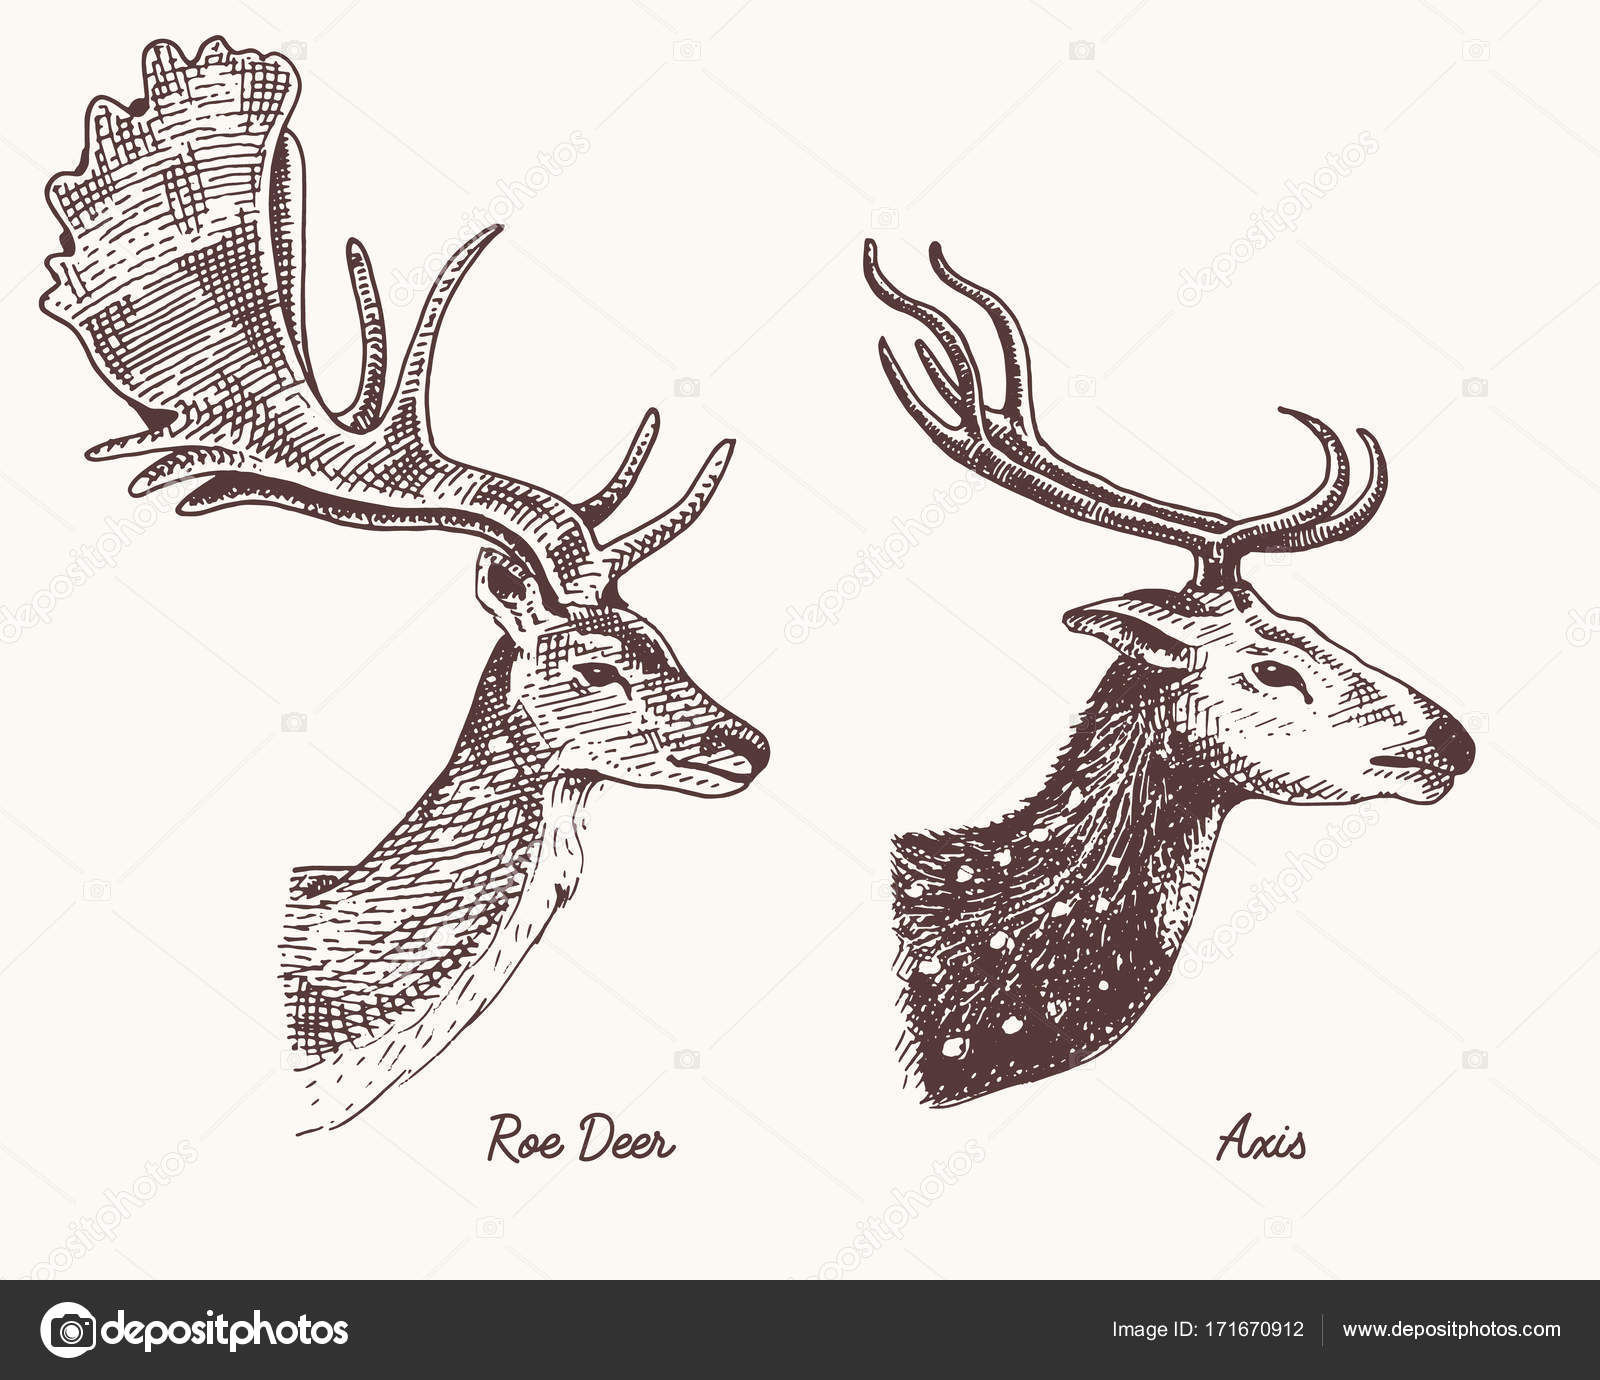 1600x1380 Roe Deer Or Doe, Axis Or Indian Dotted Vector Hand Drawn